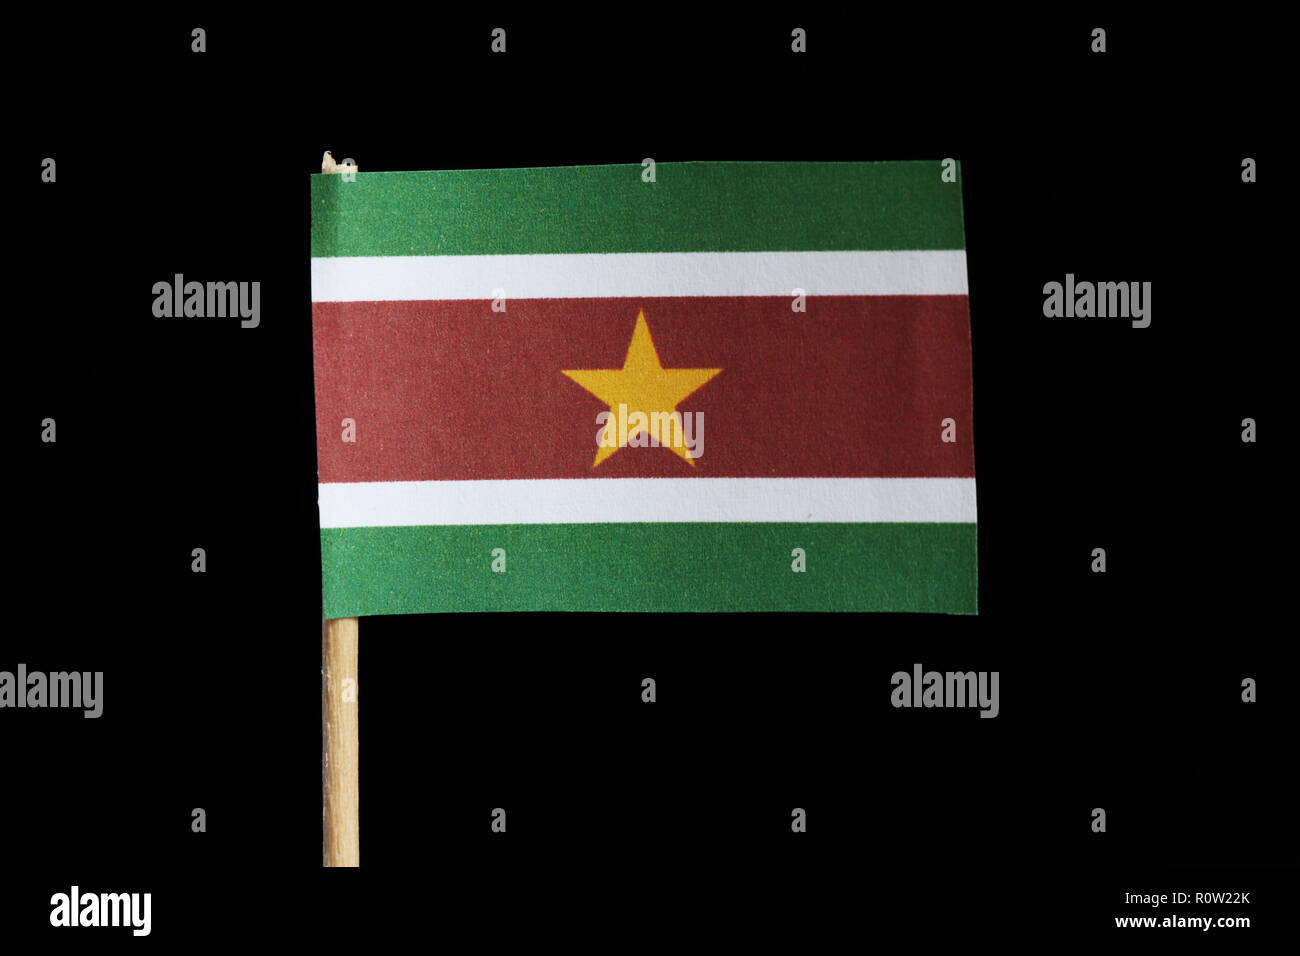 A official flag of Suriname on toothpick on black background. A horizontal triband of green and red with large white border with the large yellow star - Stock Image